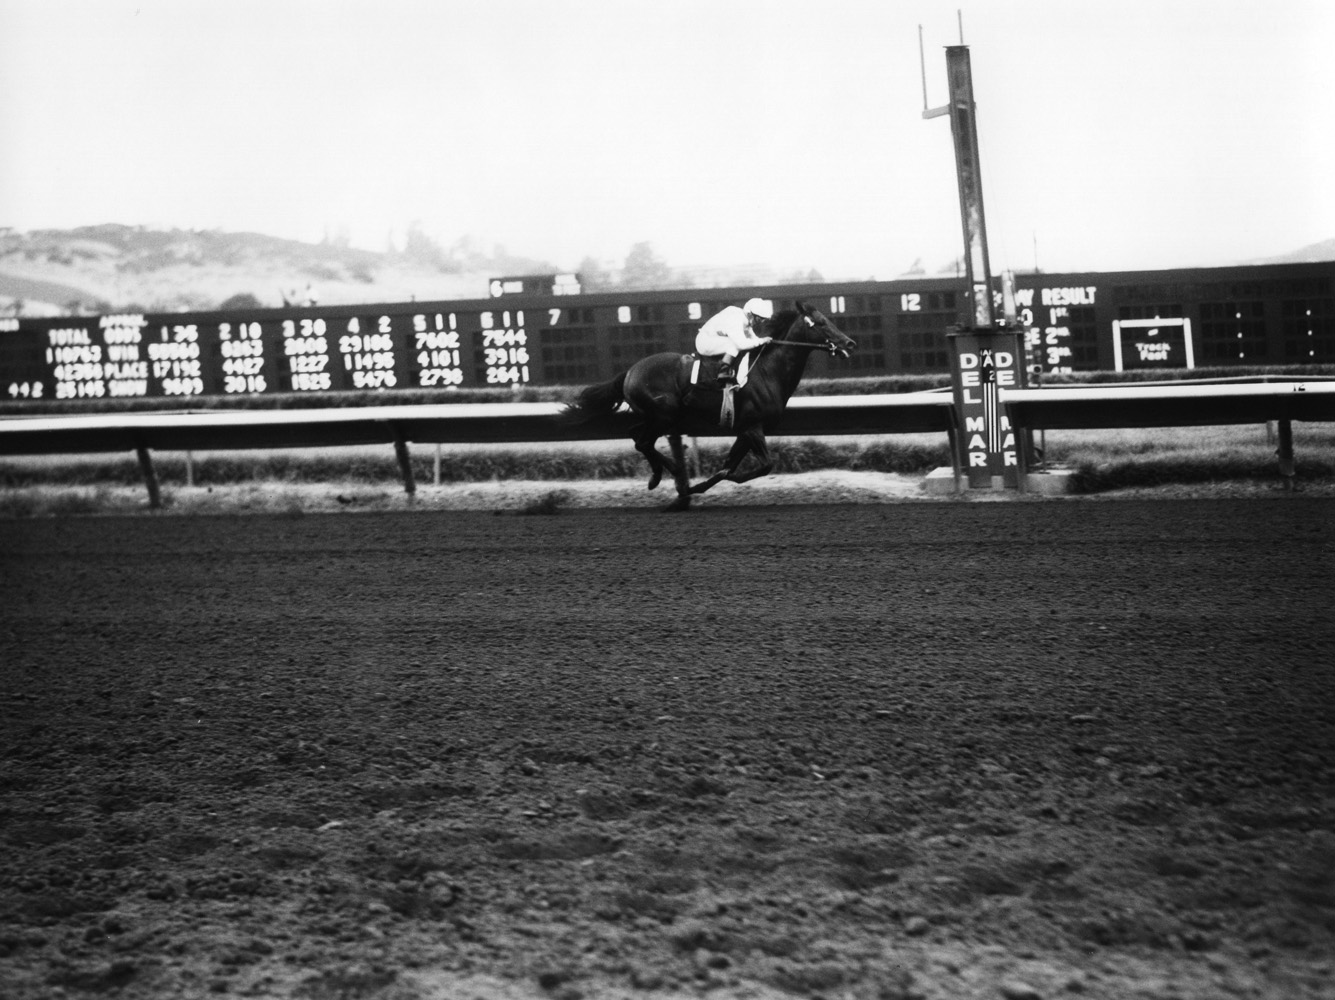 Ack Ack (Bill Shoemaker up) racing at Del Mar Thoroughbred Club, September 1970 (Del Mar Thoroughbred Club/Museum Collection)